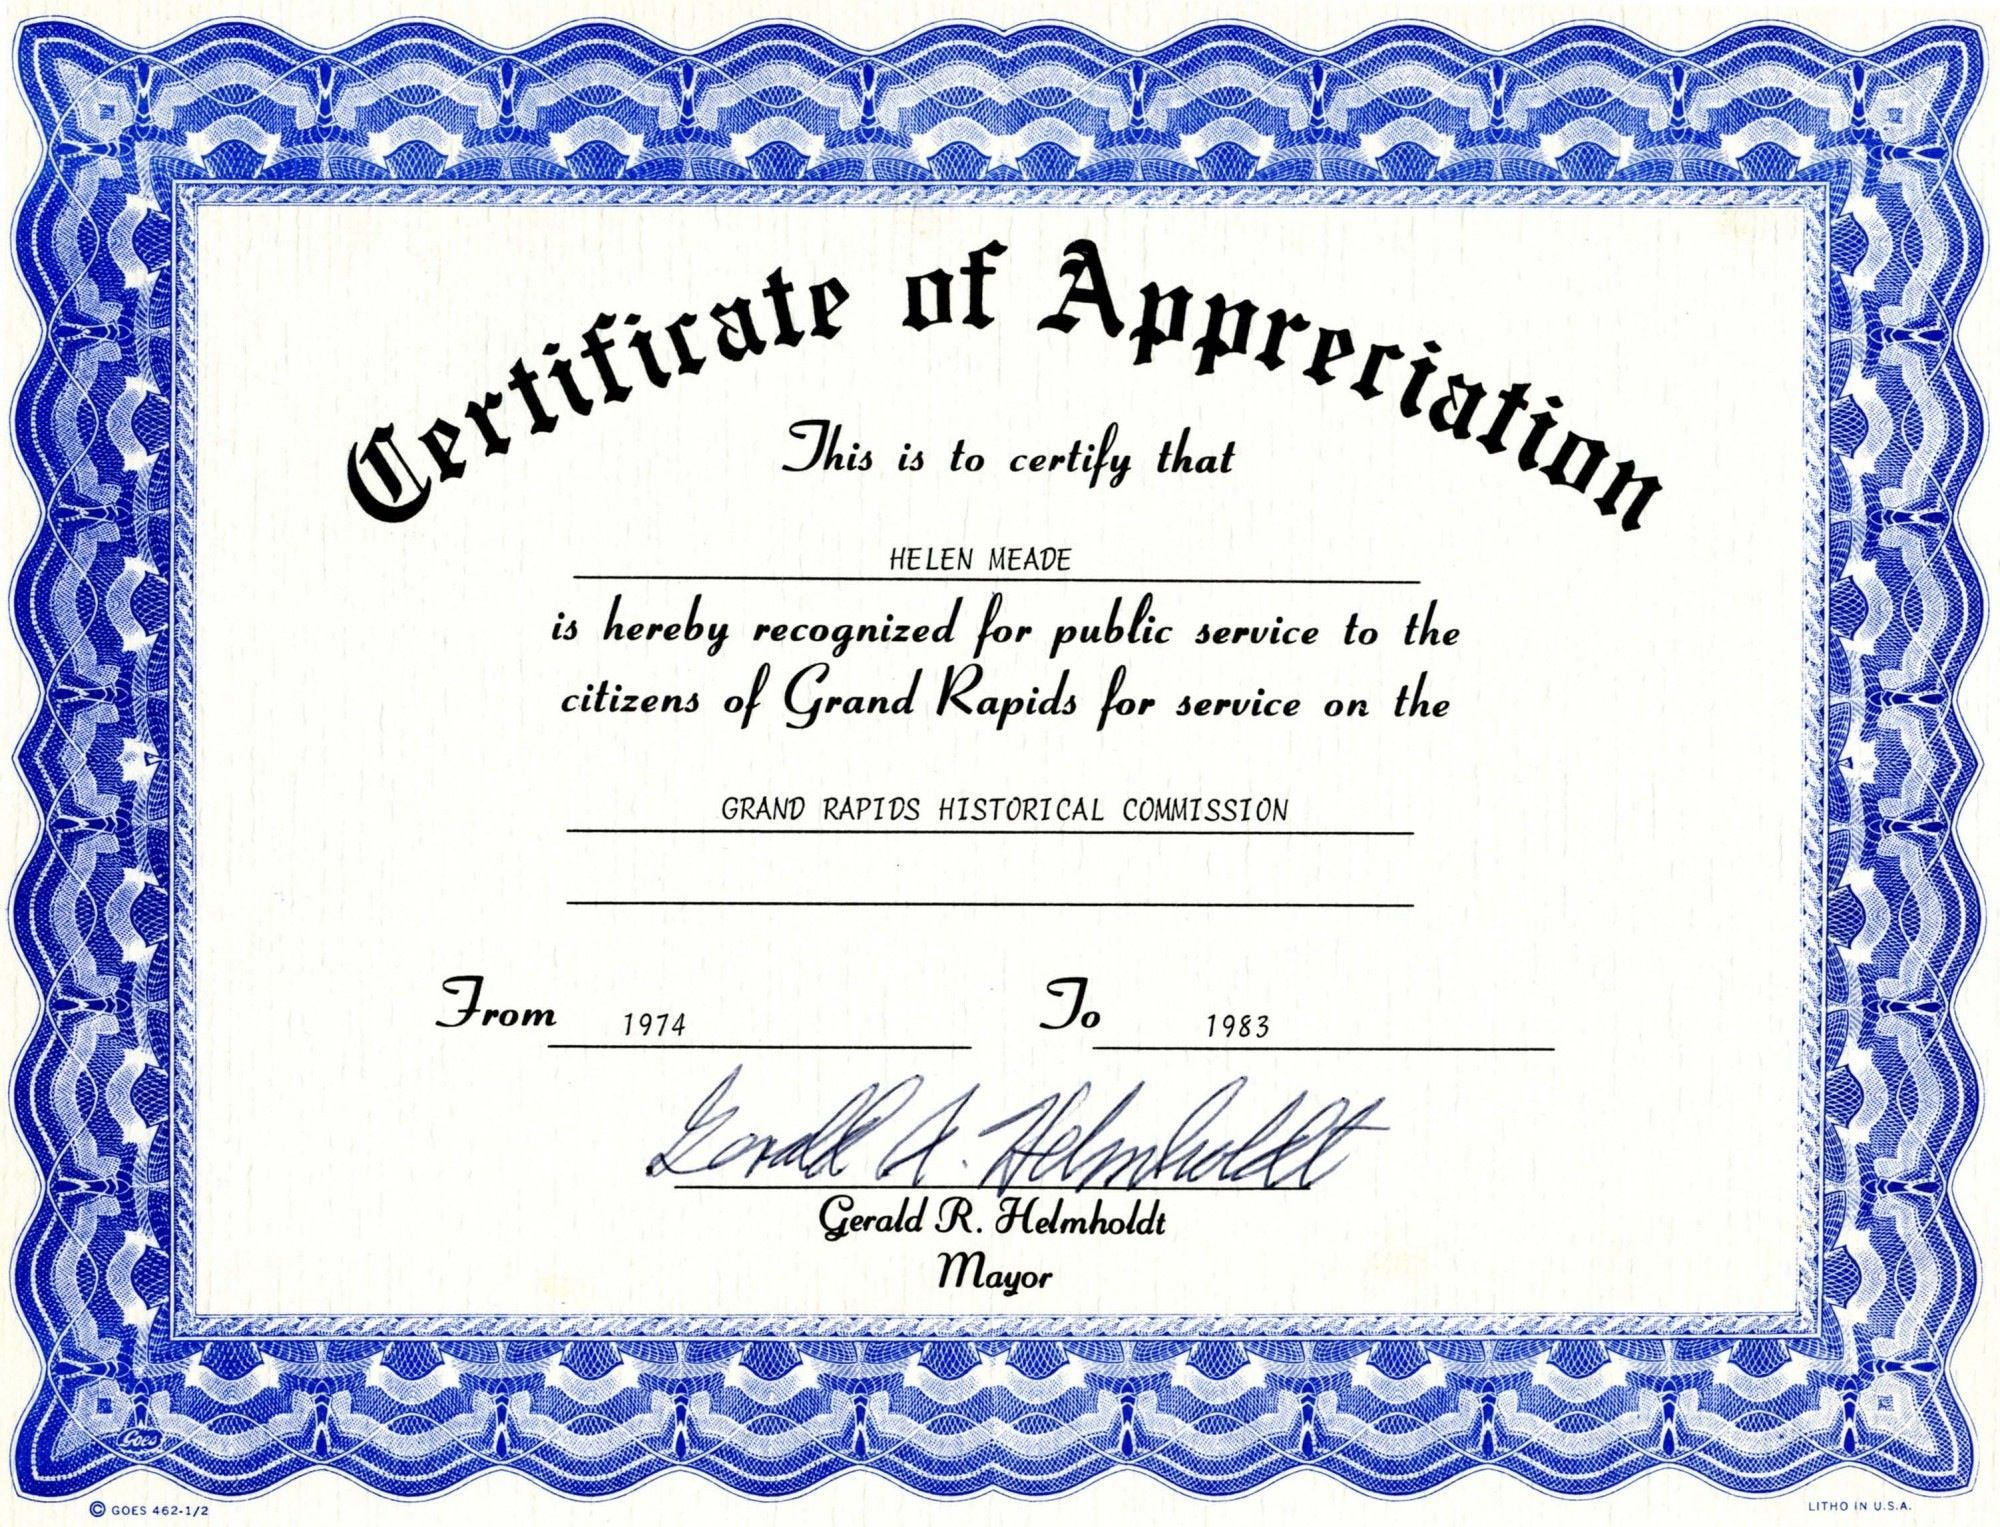 008 Simple Award Certificate Template Word Picture  Doc Sample Wording ScholarshipFull